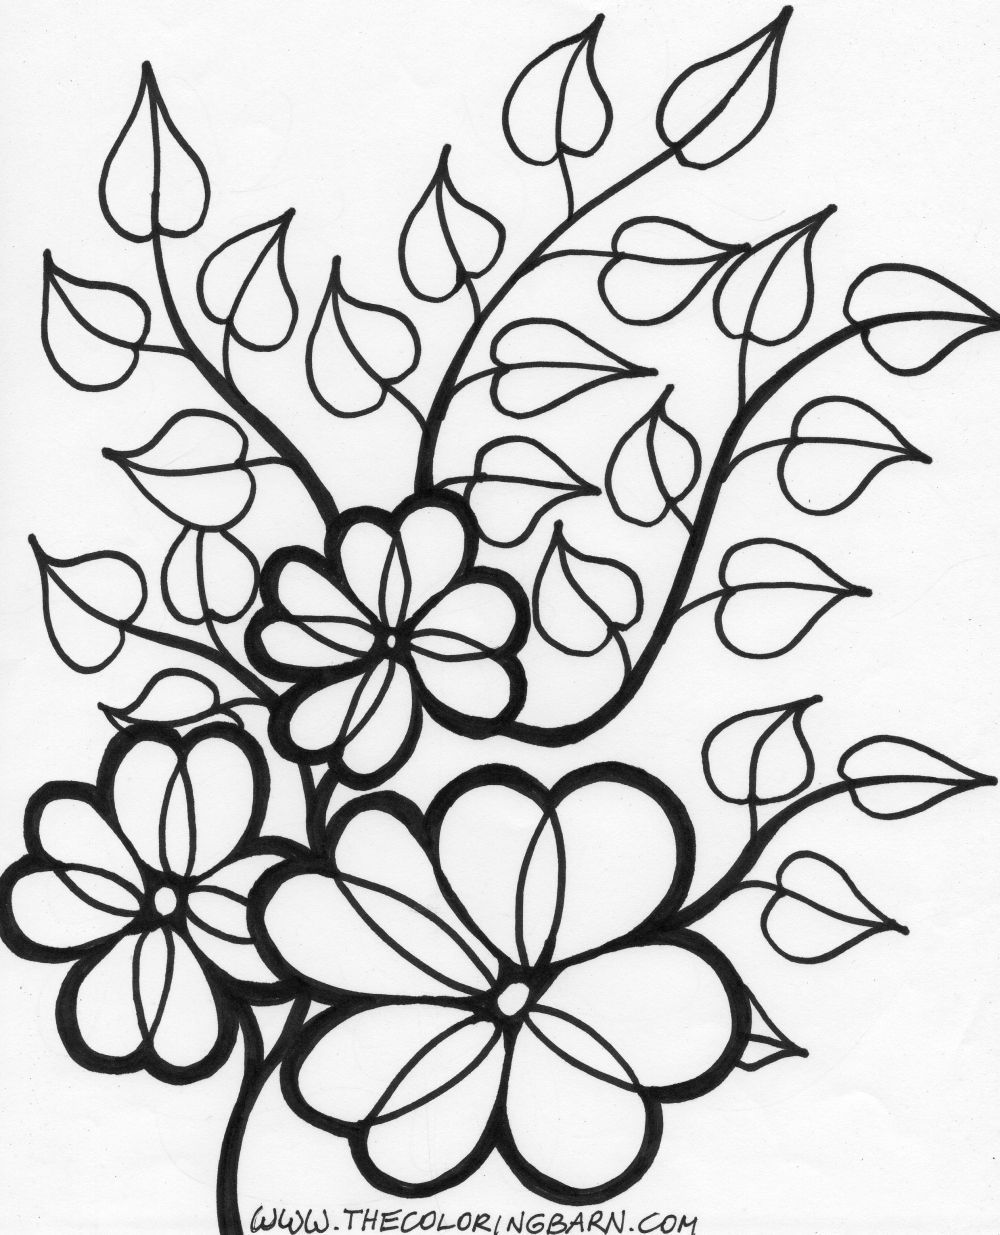 Www Thecoloringbarn Com Wp Content Uploads 2010 07 Flowers 20 Jpg Printable Flower Coloring Pages Flower Coloring Pages Sunflower Coloring Pages